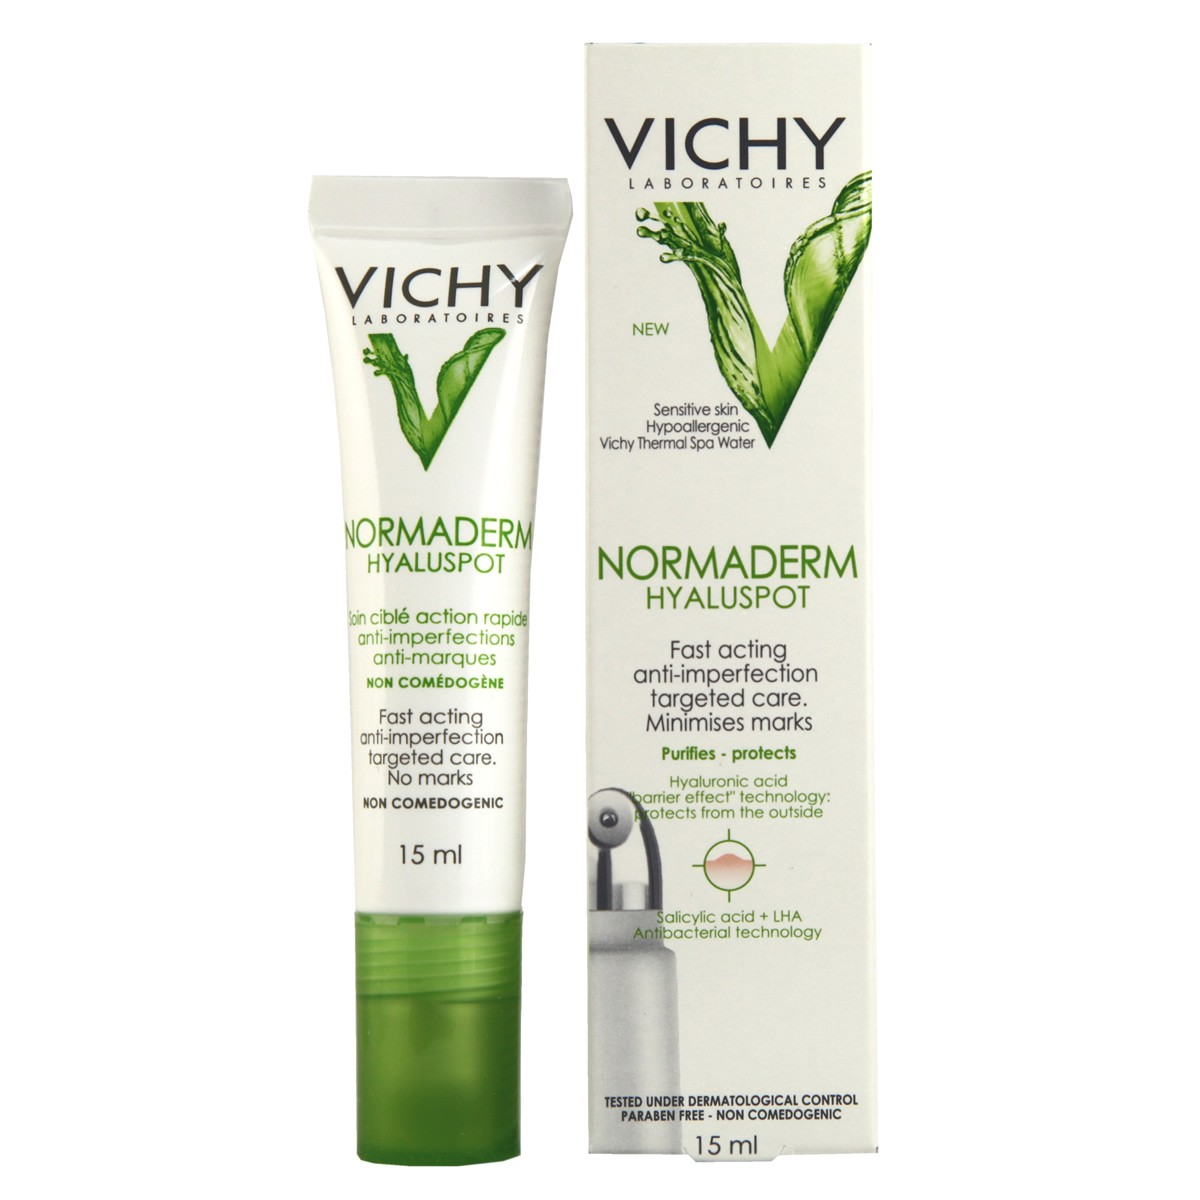 Vichy Normaderm Hyaluspot Fast-acting Anti-imperfection Targeted Care